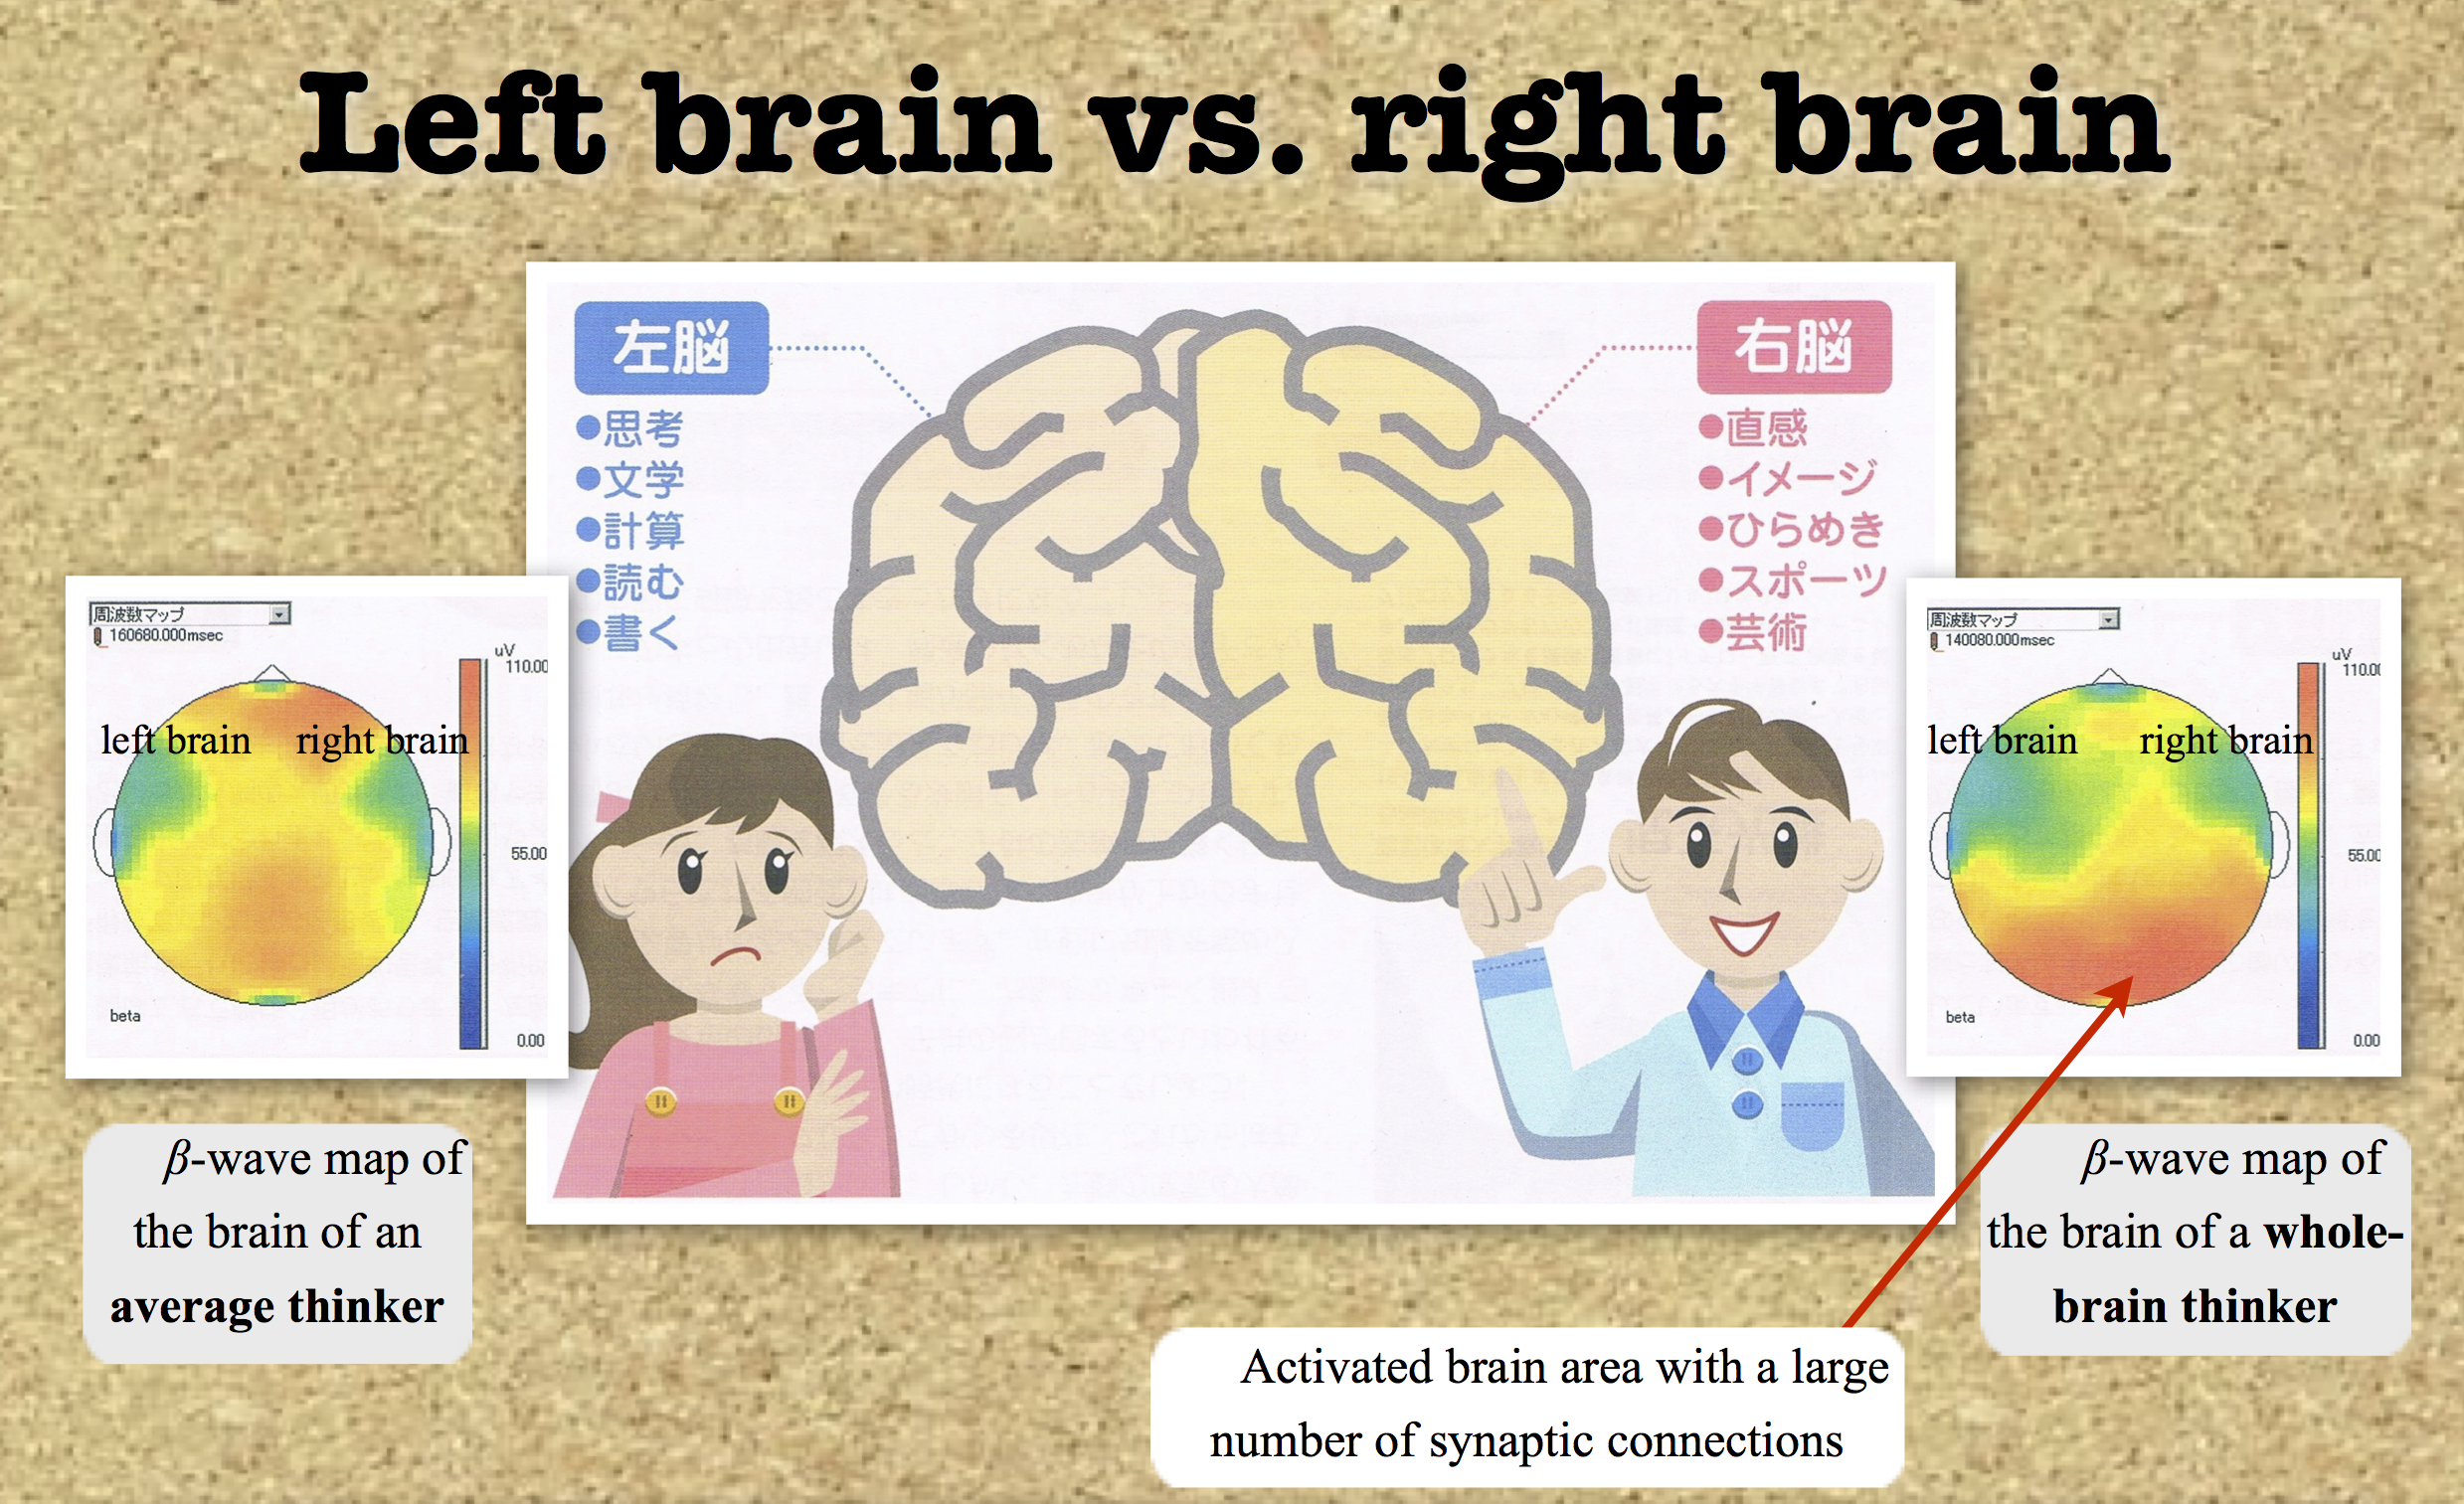 left brain vs right brain